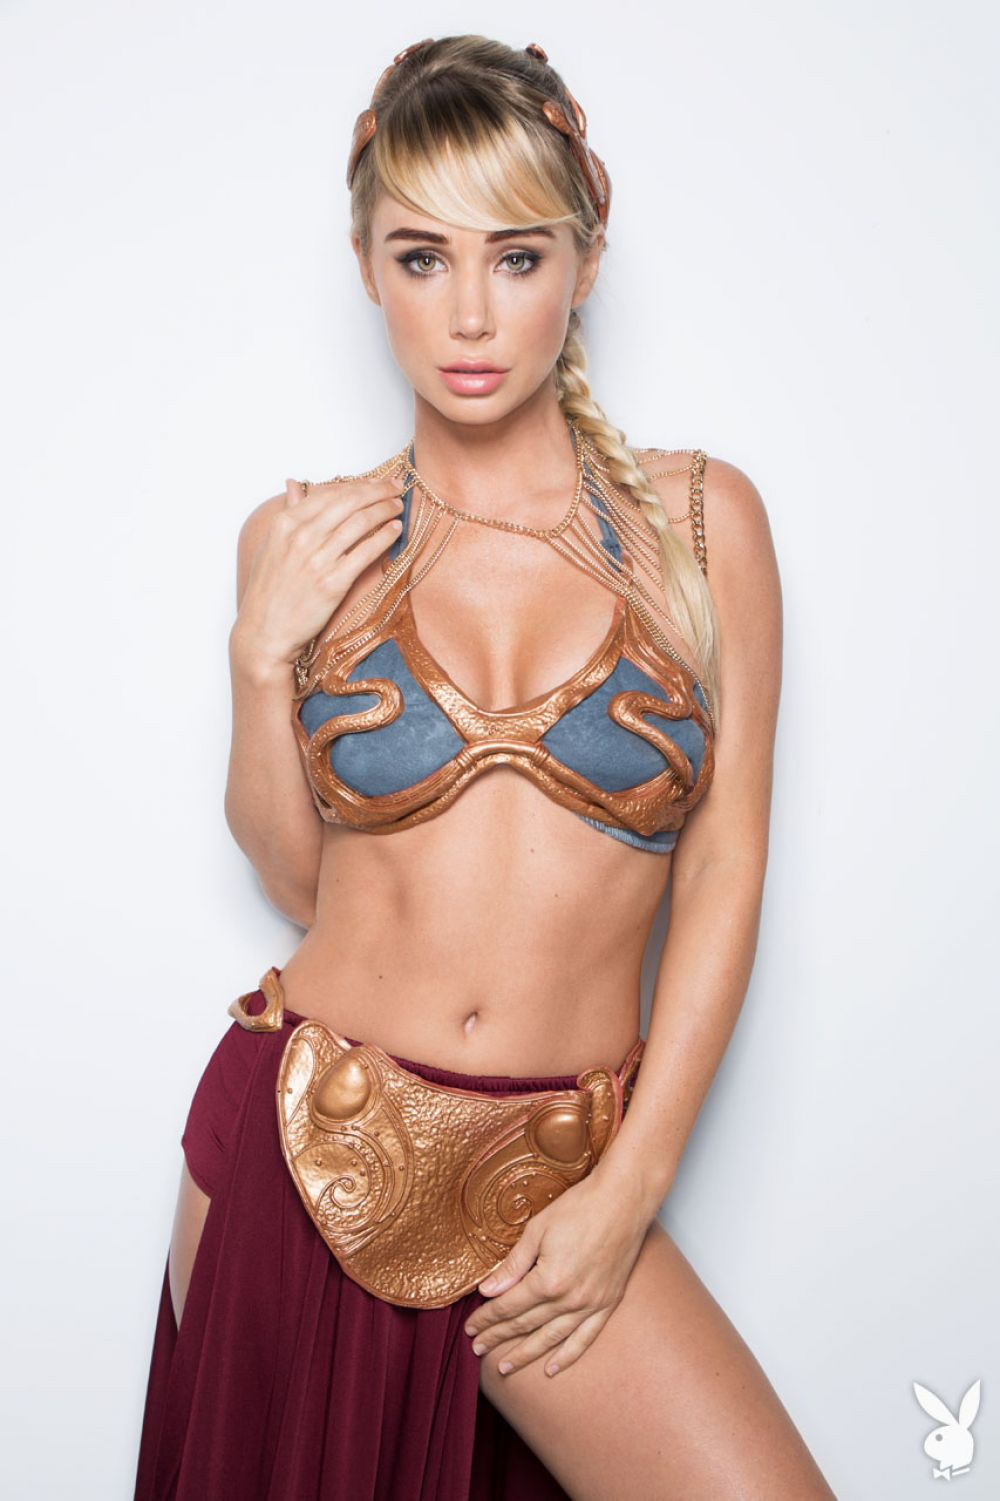 SARA JEAN UNDERWOOD - Star Wars Play Boy Photoshoot